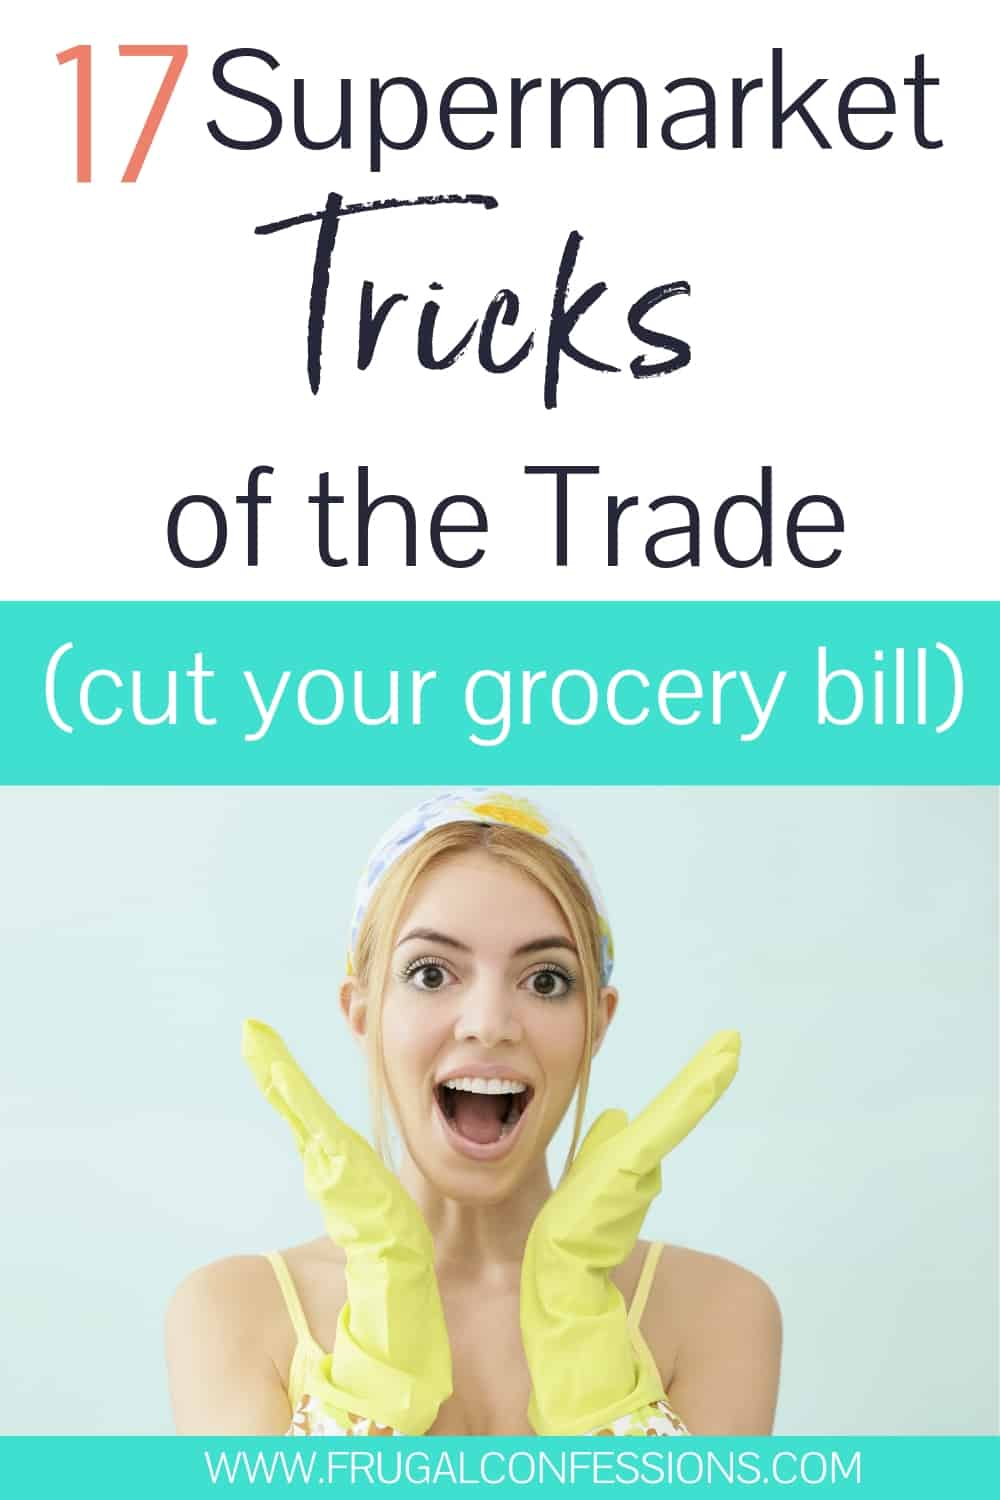 """woman with handkerchief on, and yellow gloves, text overlay """"17 supermarket tricks of the trade (cut your grocery bill)"""